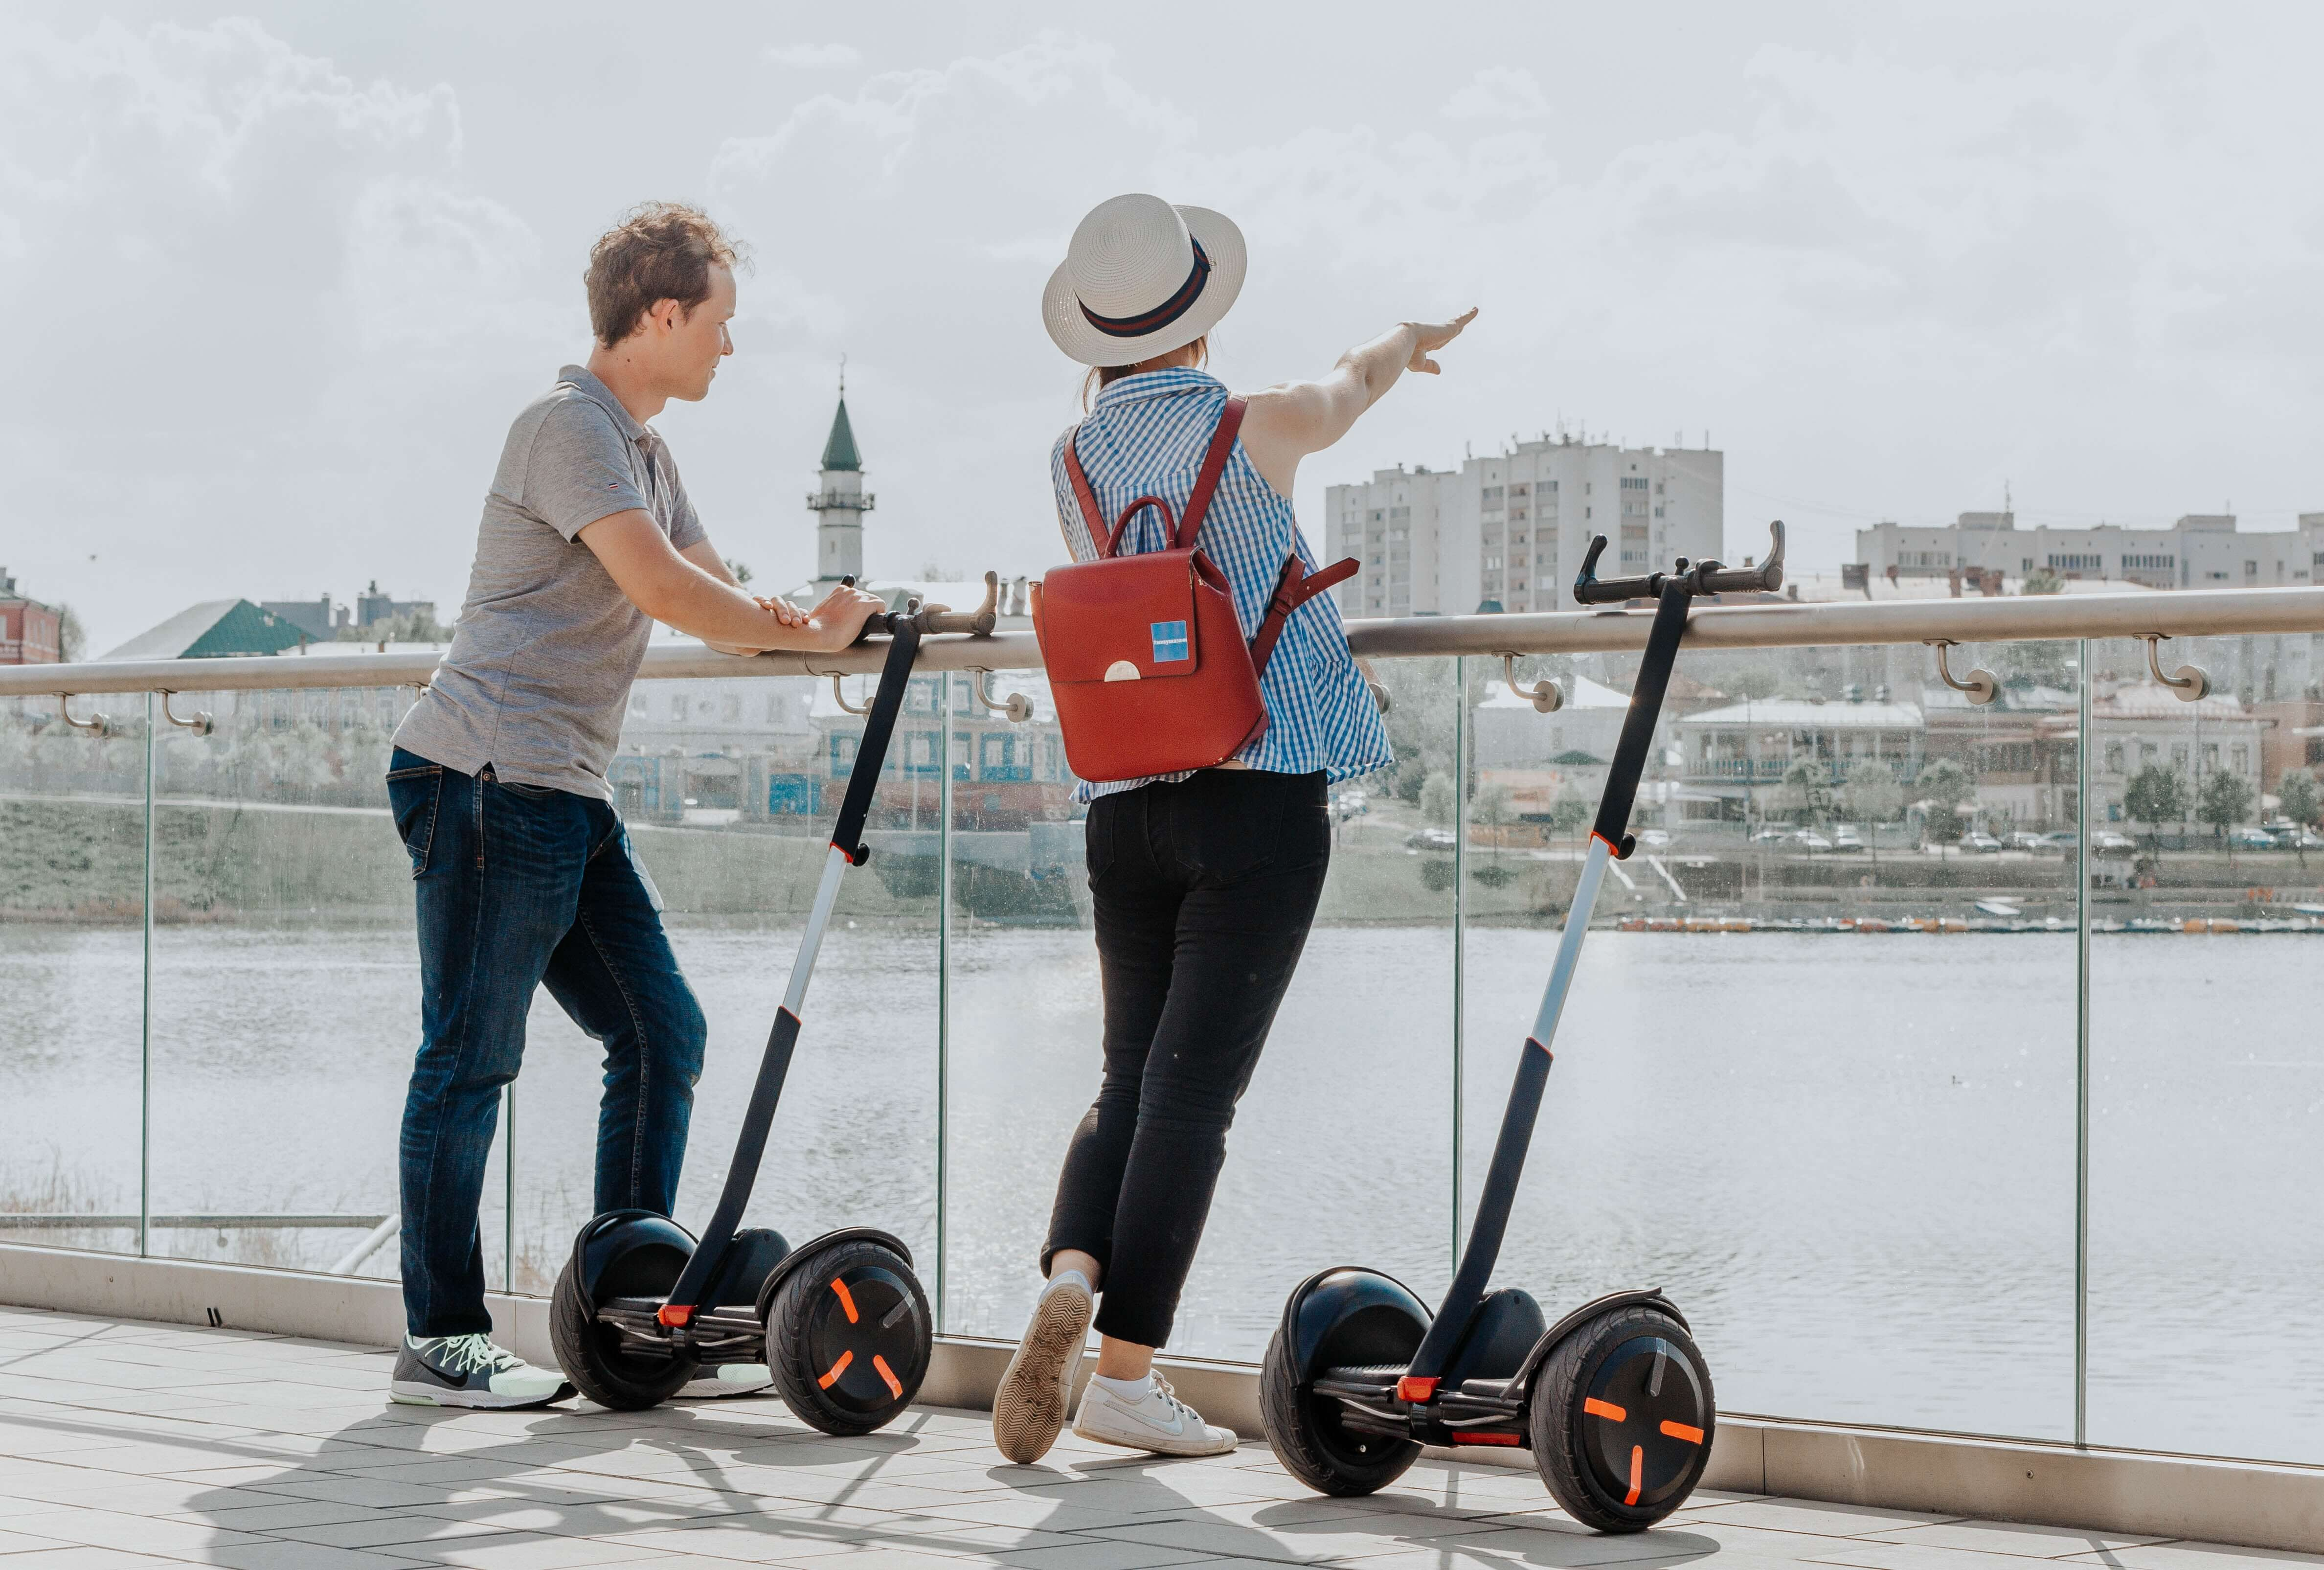 a man and a woman riding a segway on the river bank